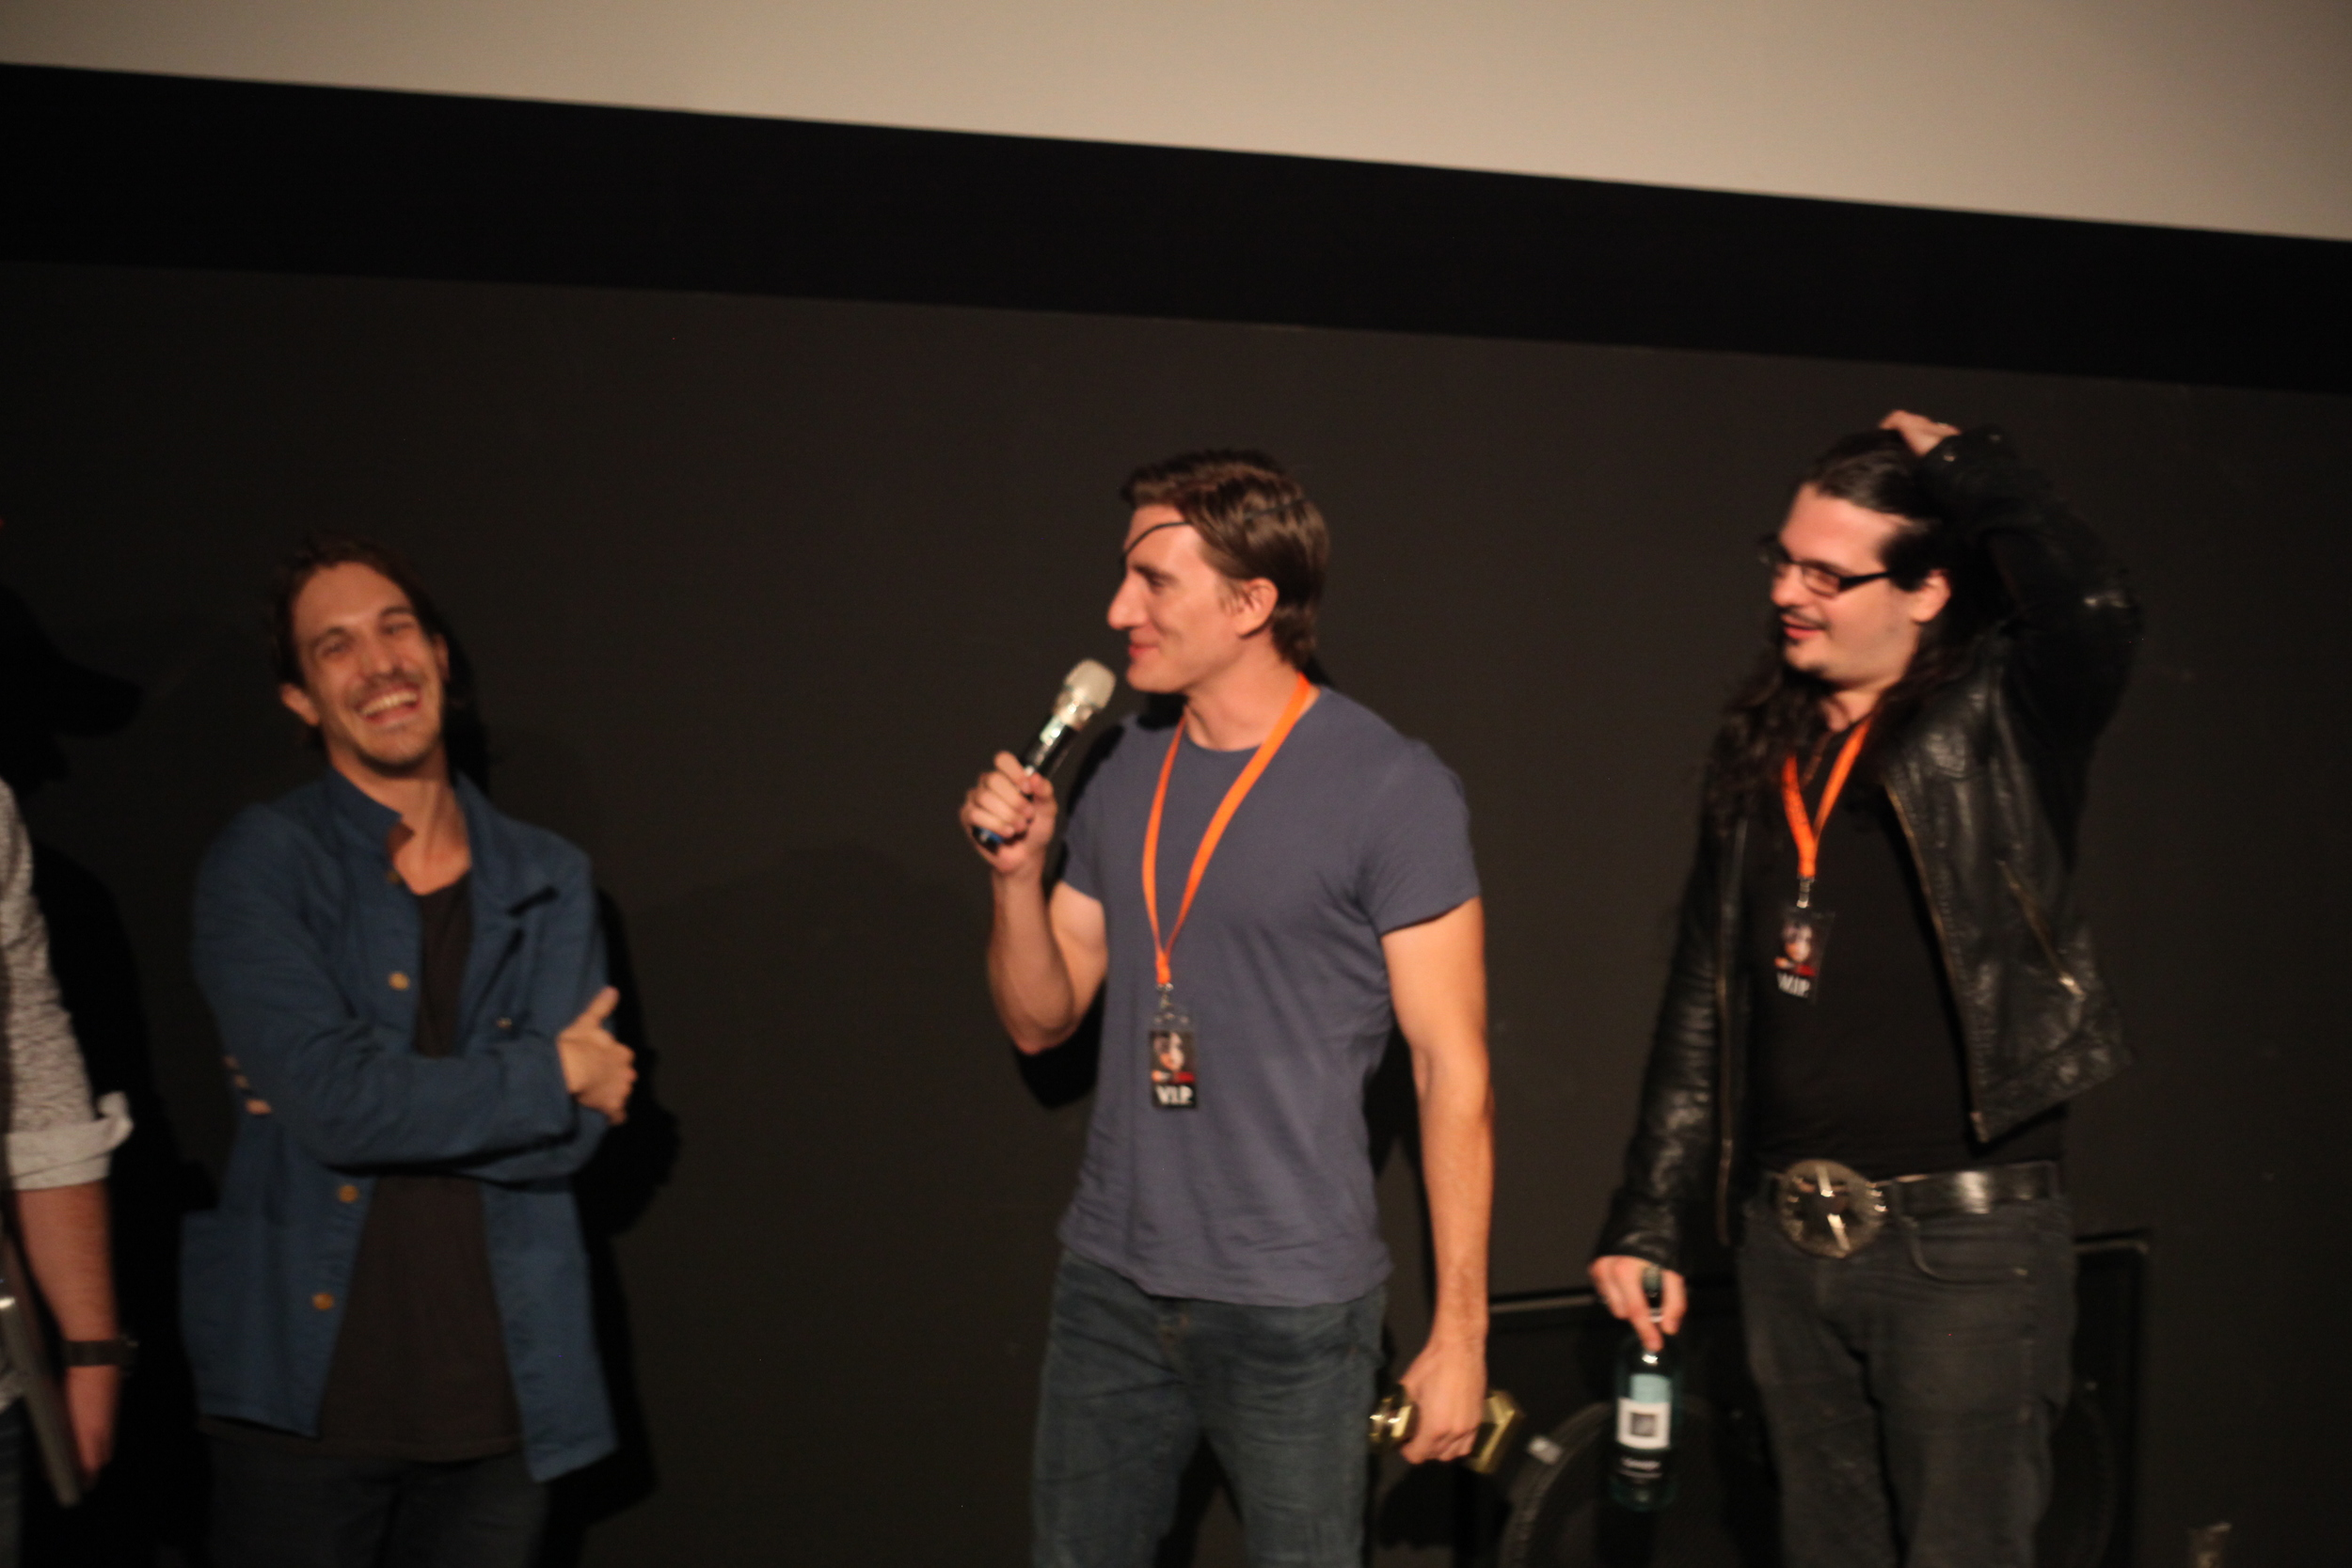 (Left to Right), Festival Judge Steven Kastrissios, Jason Trost and David Hellmore from HOW TO SAVE US - Best Film, Best Director at Fantastic Planet Film Festival.